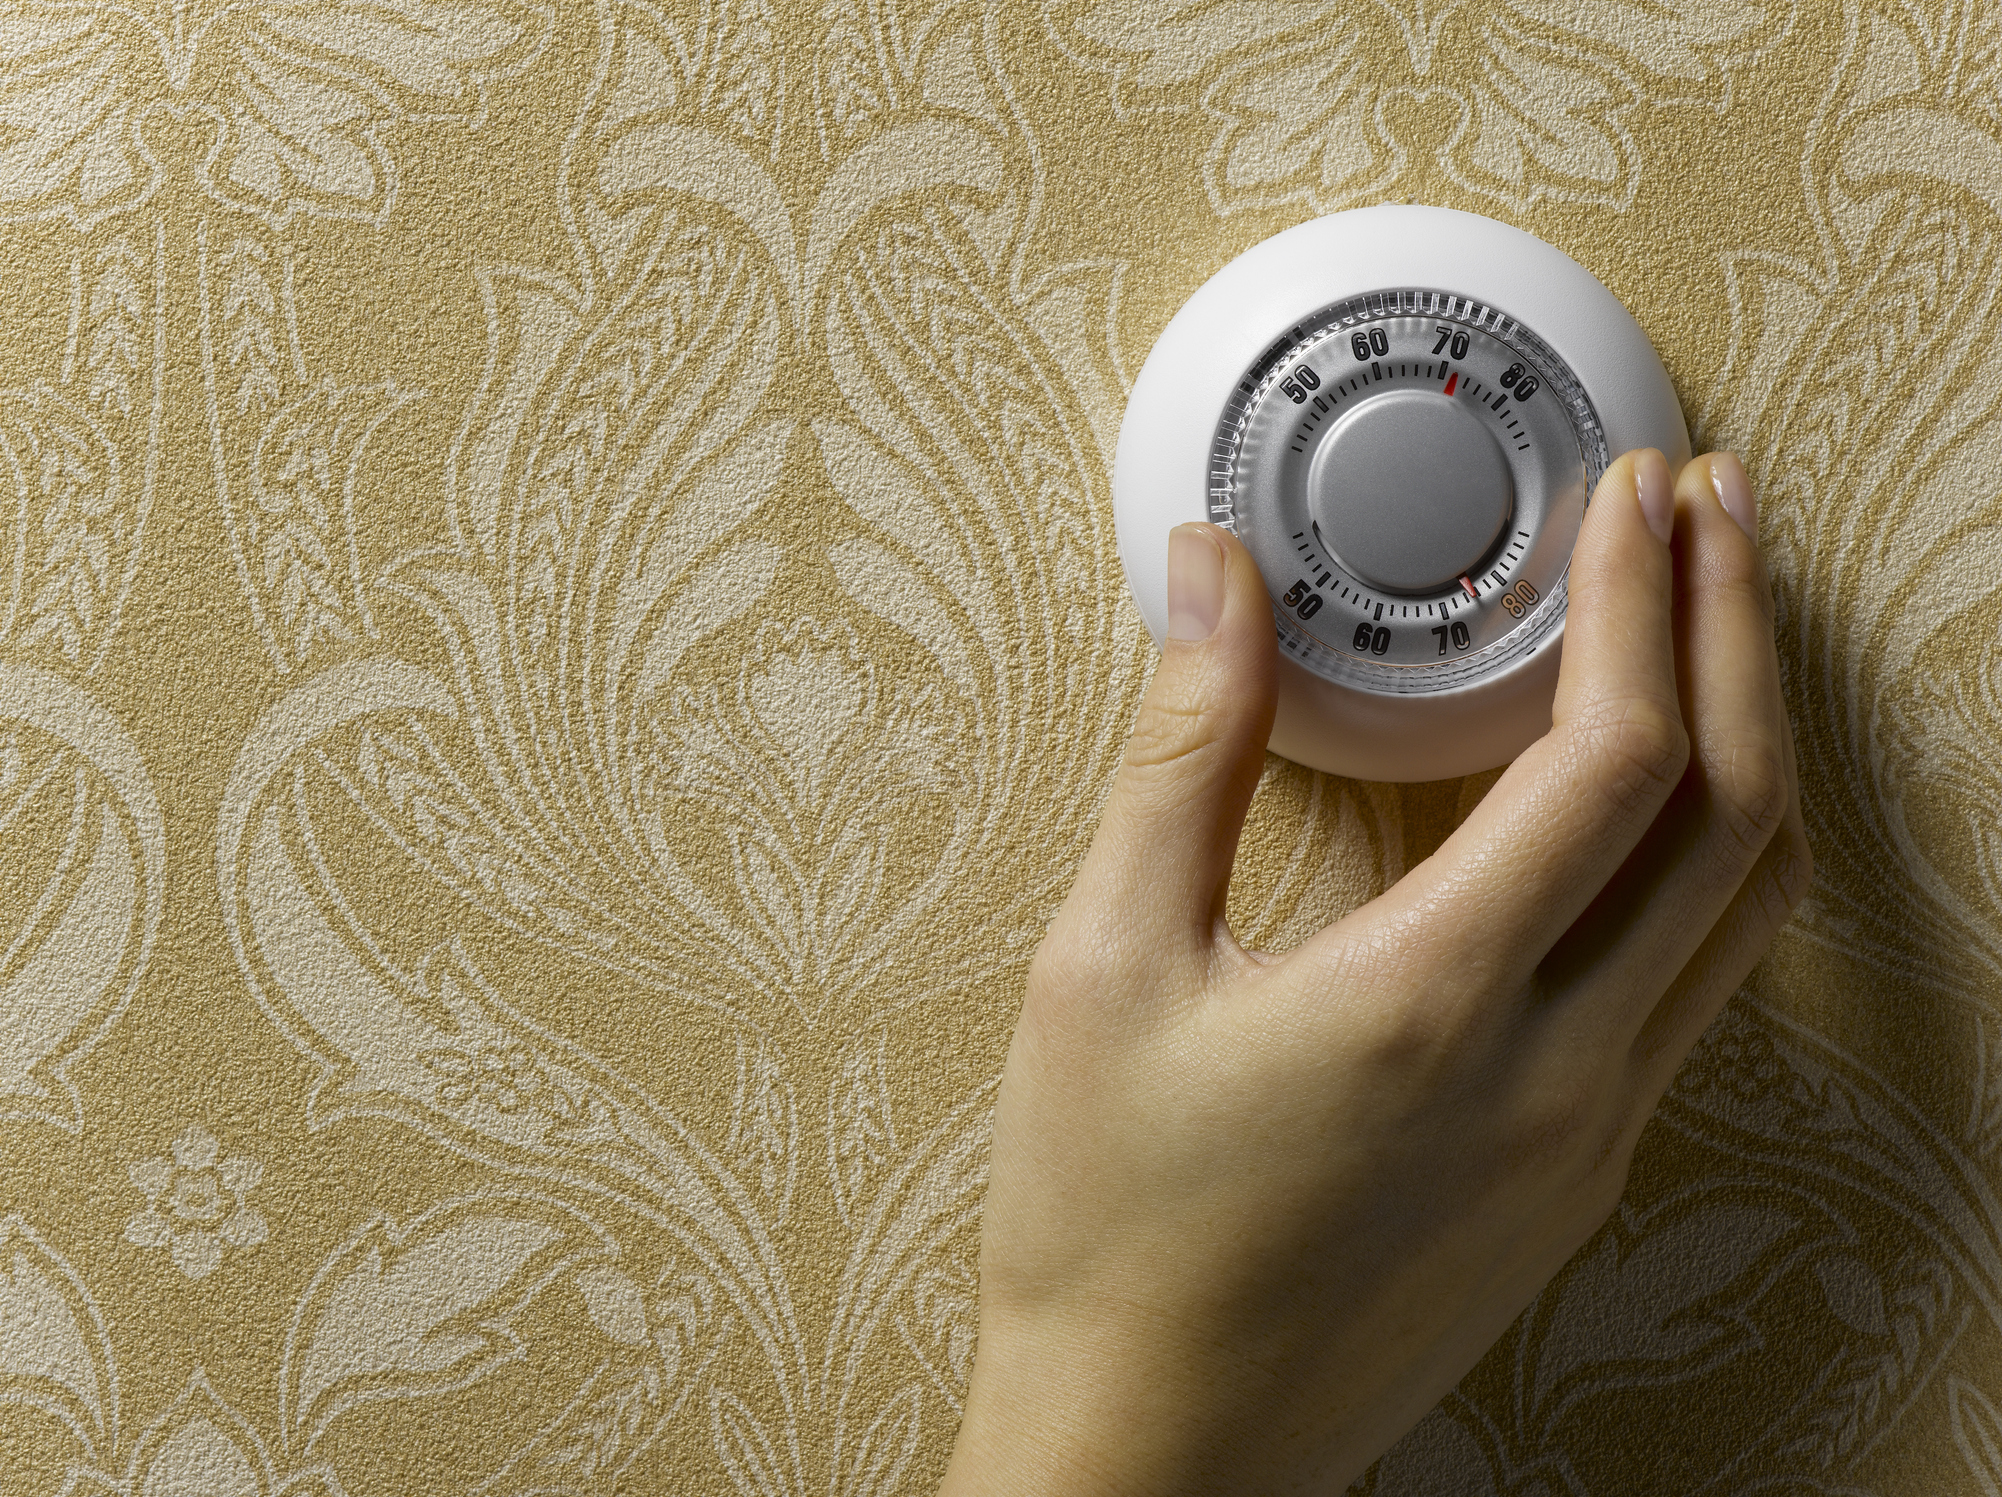 Top 5 AC Tips for Summer